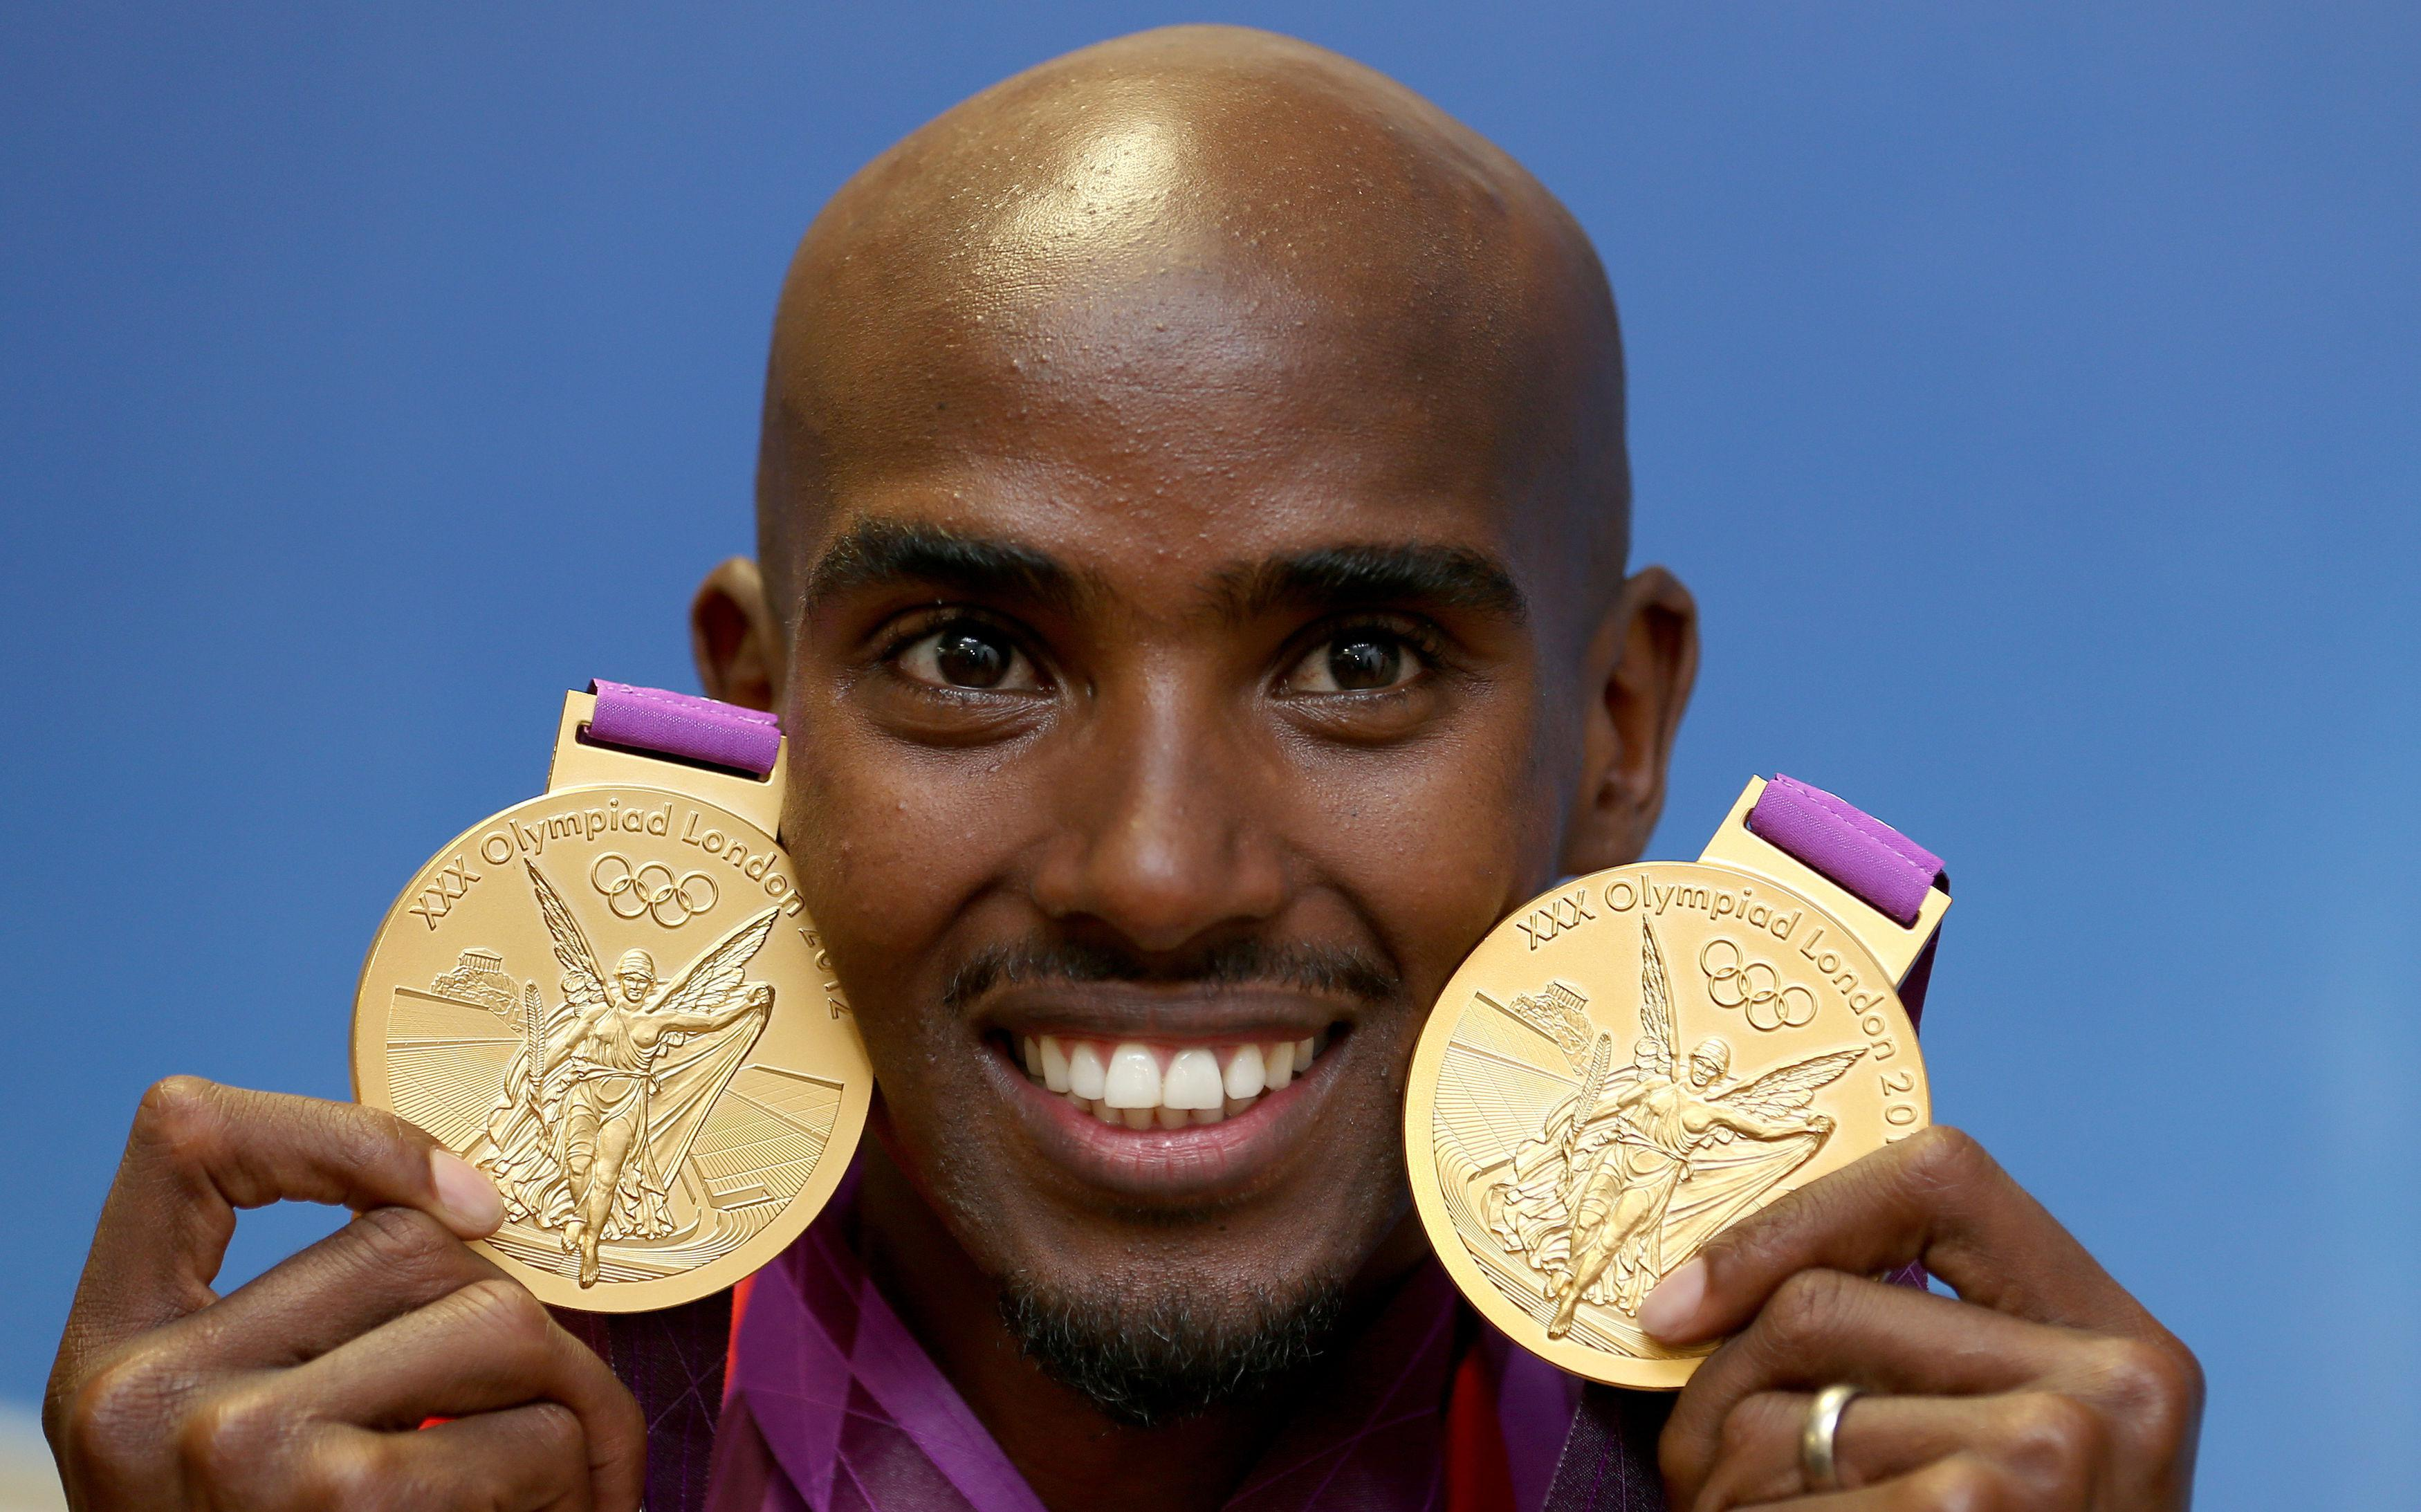 Mo delivered to expectations as he won double Gold at Olympics in 2012